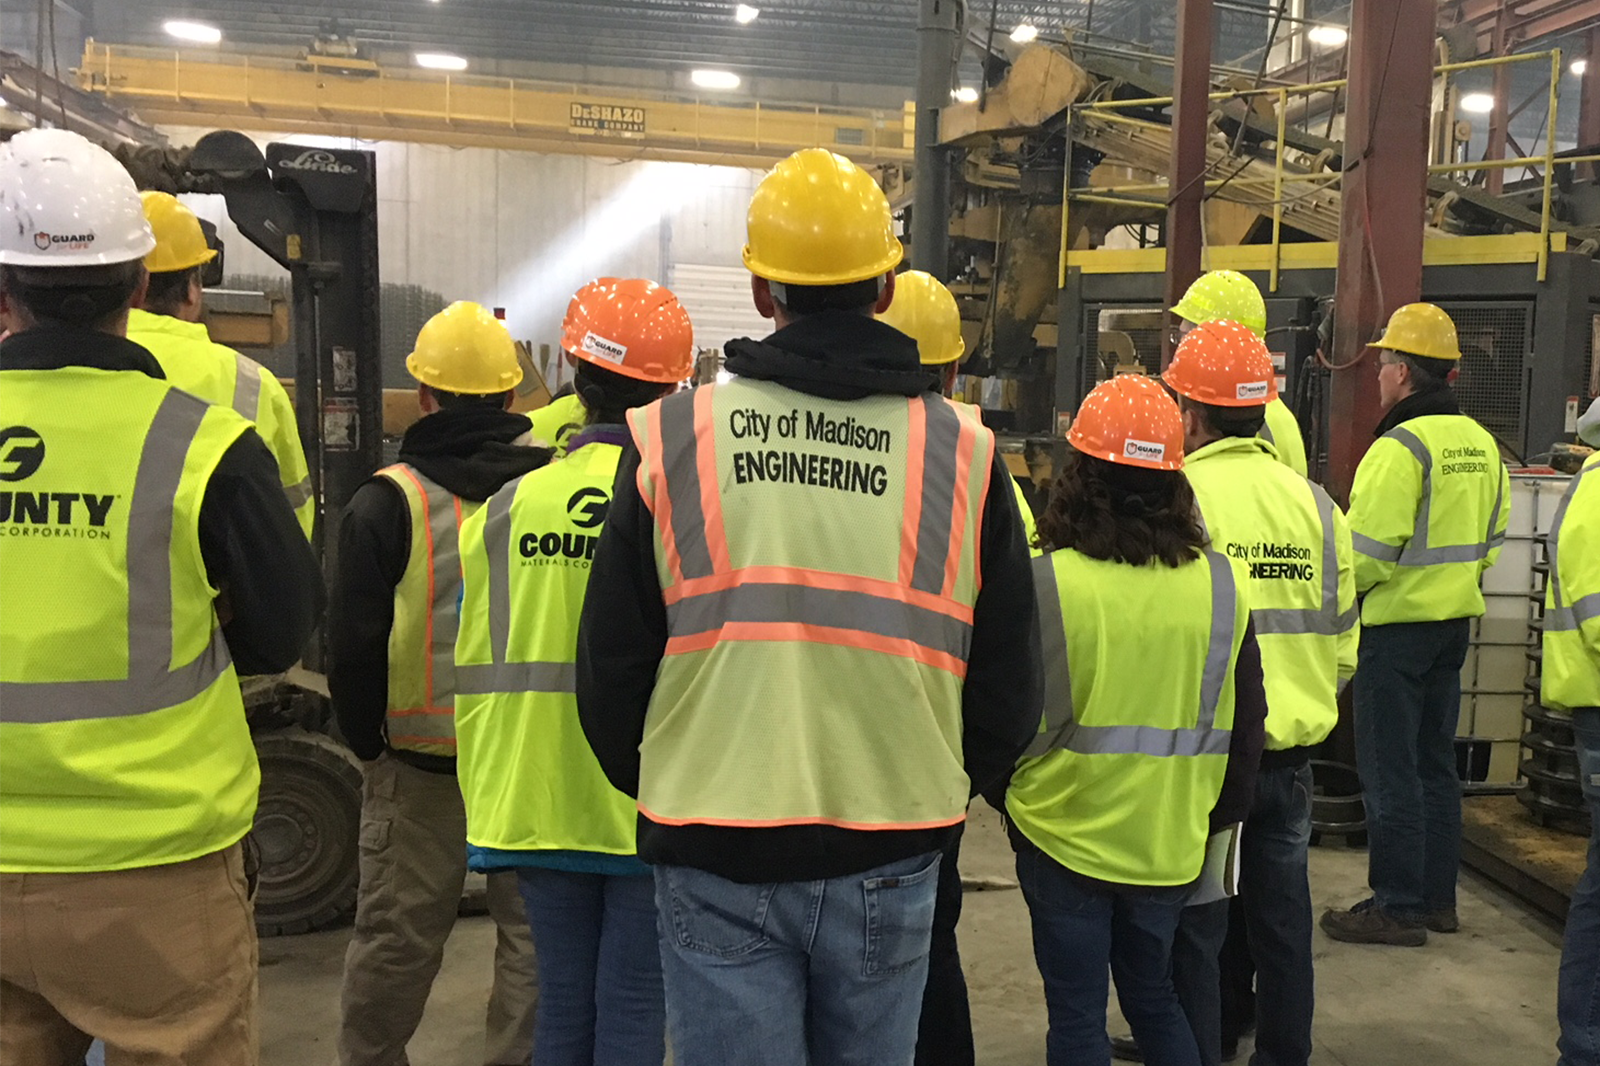 Madison Wisconsin City Engineers Tour County Materials Concrete Pipe Manufacturing Facility